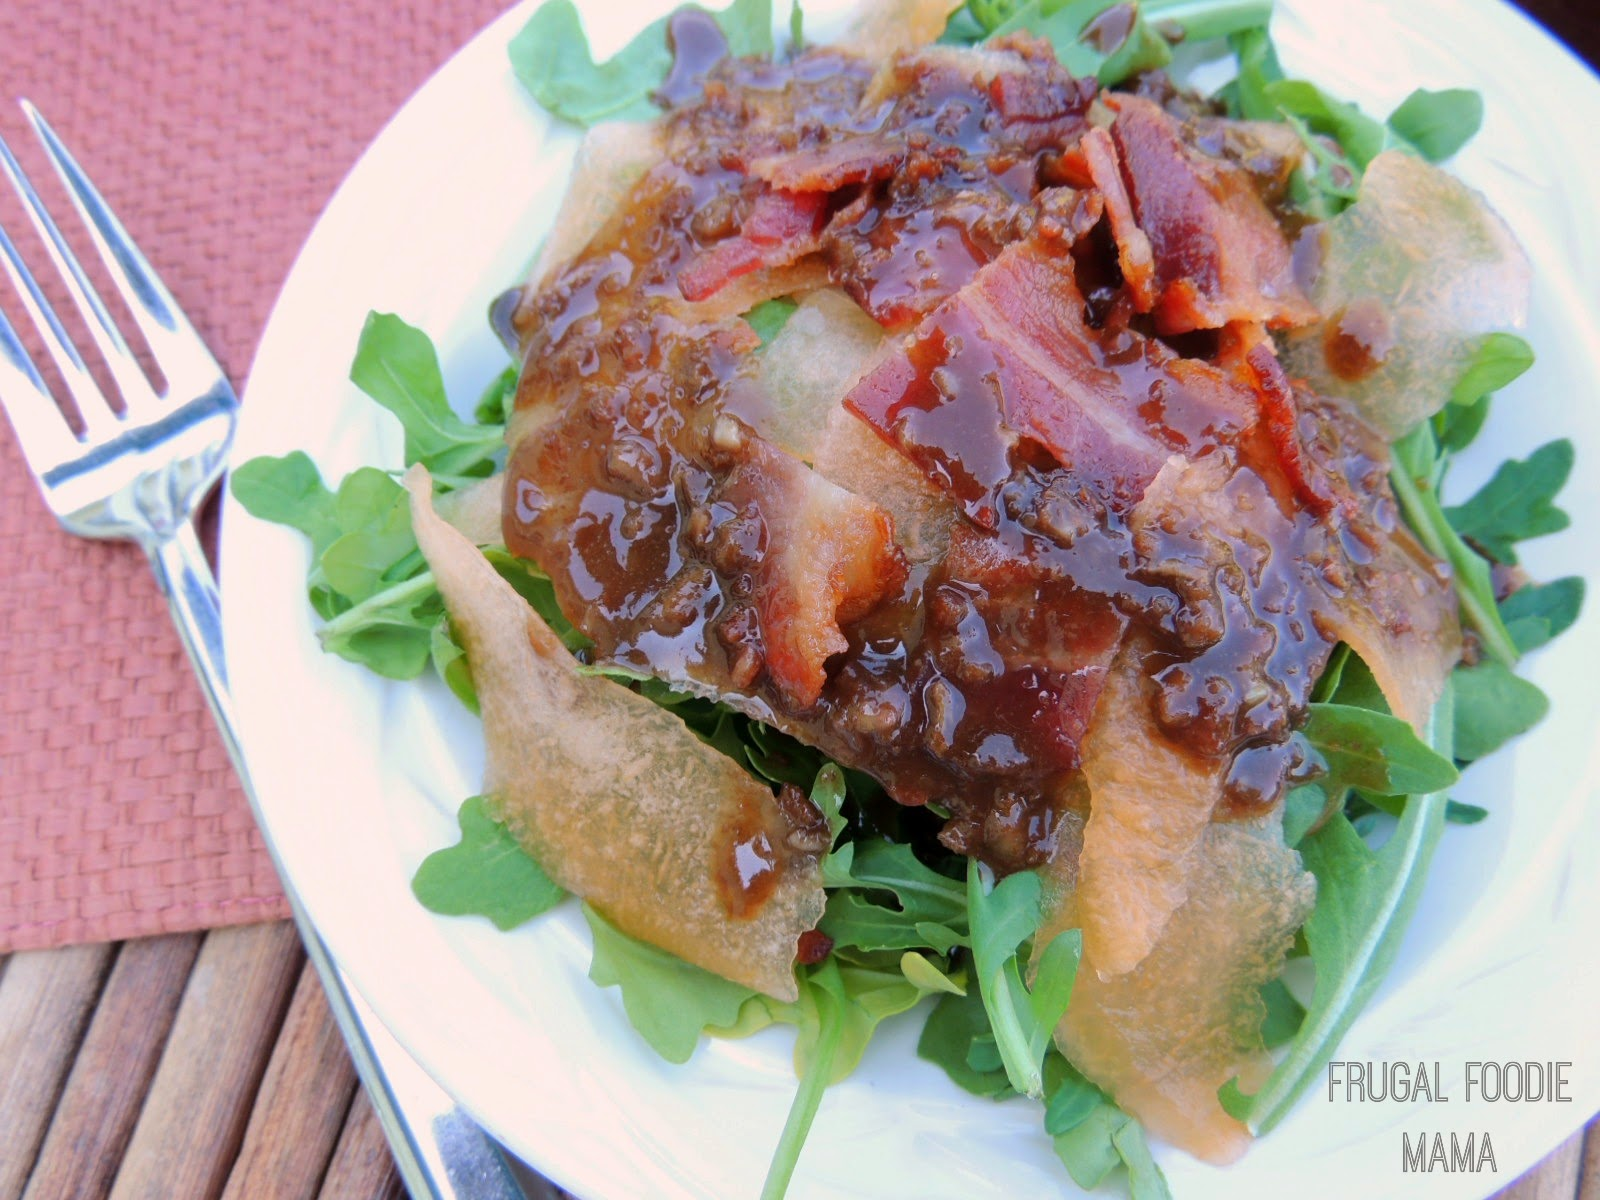 Bacon, Cantaloupe, and Arugula Salad with Bacon Balsamic Dressing via thefrugalfoodiemama.com